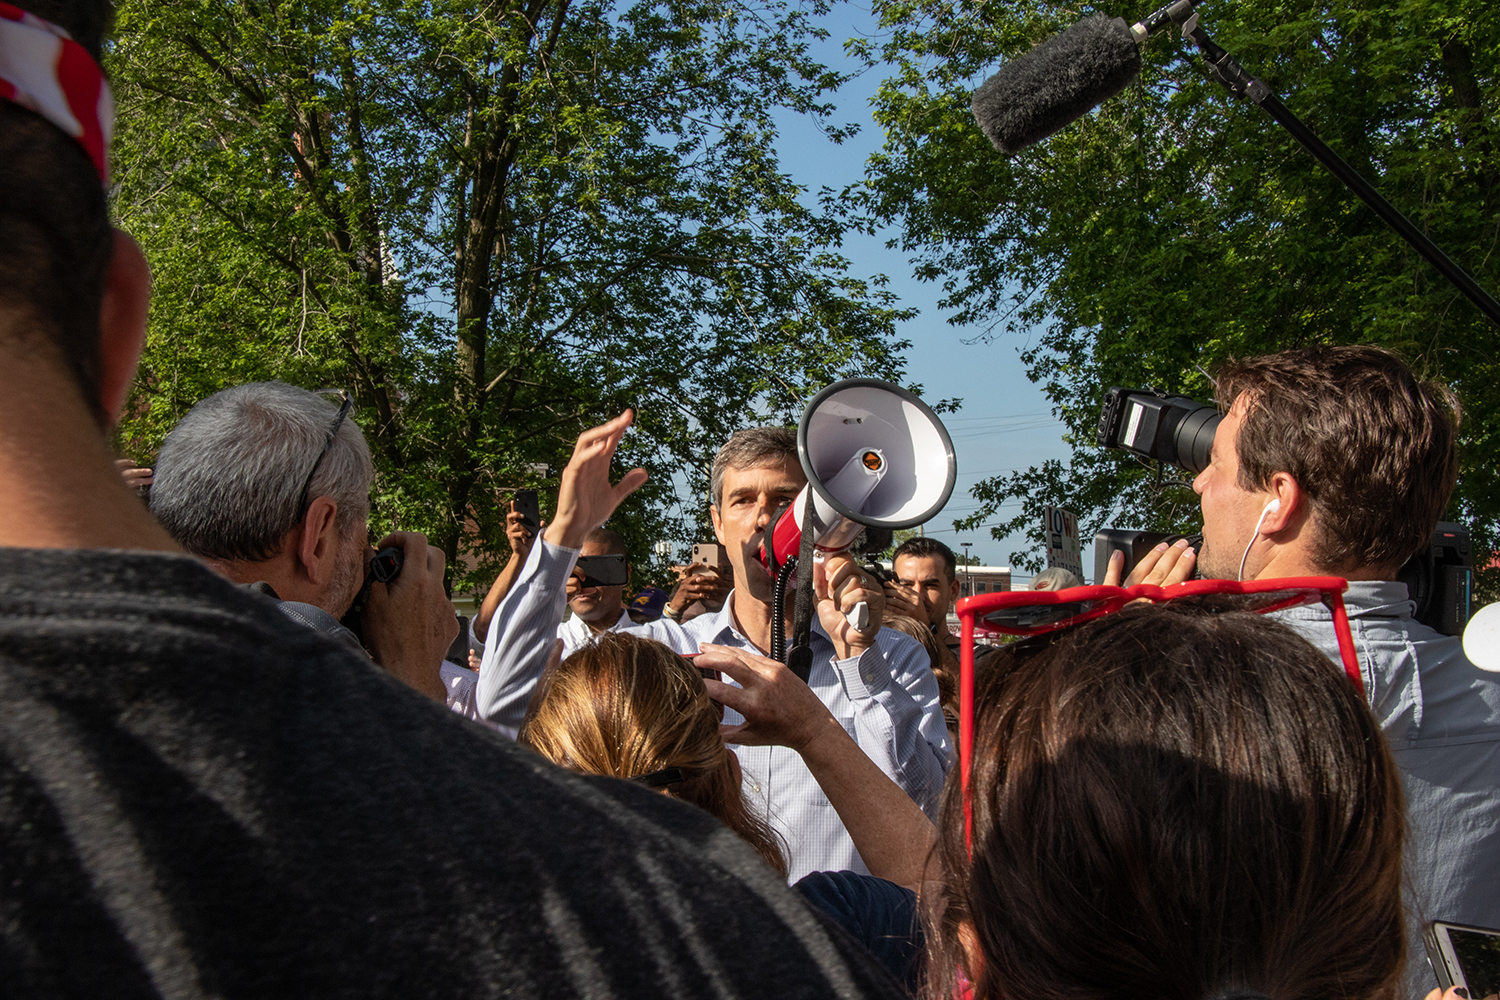 Former+U.S.+Rep.+Beto+O%27Rourke+speaks+to+crowd+members+before+the+annual+4th+of+July+Parade+in+Independence%2C+Iowa.+This+is+the+159th+4th+of+July+parade+in+Independence.+